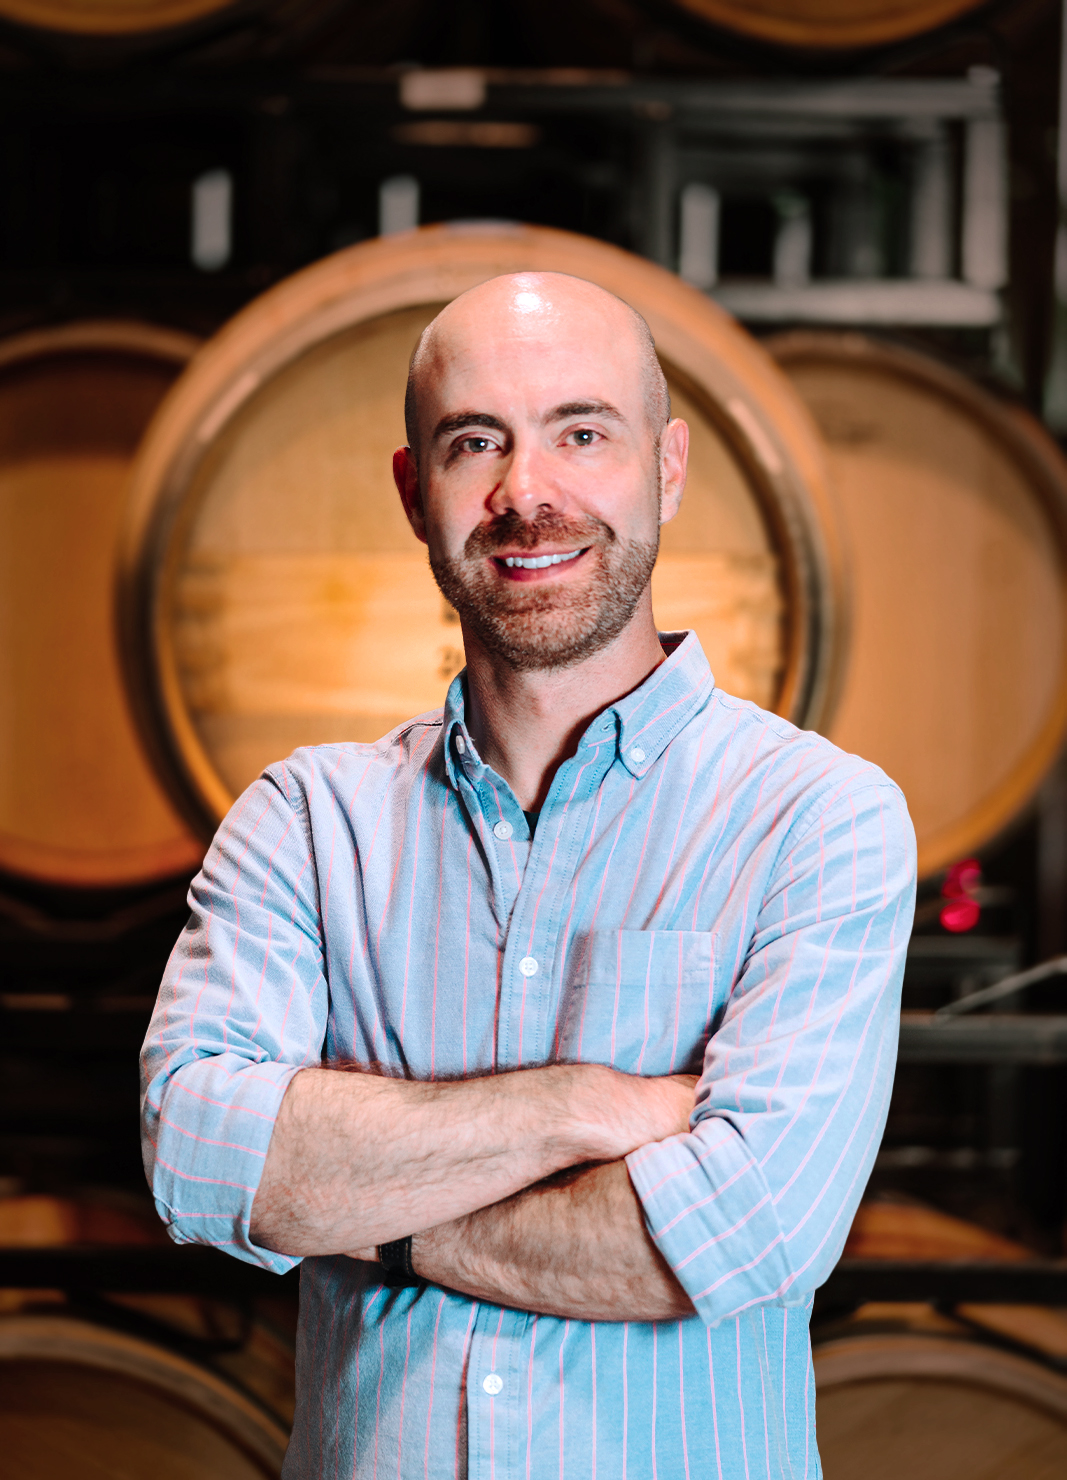 Carboy Wine Club Manager and Corporate Trainer, Kellen Brewer, standing in front of a wine barrel